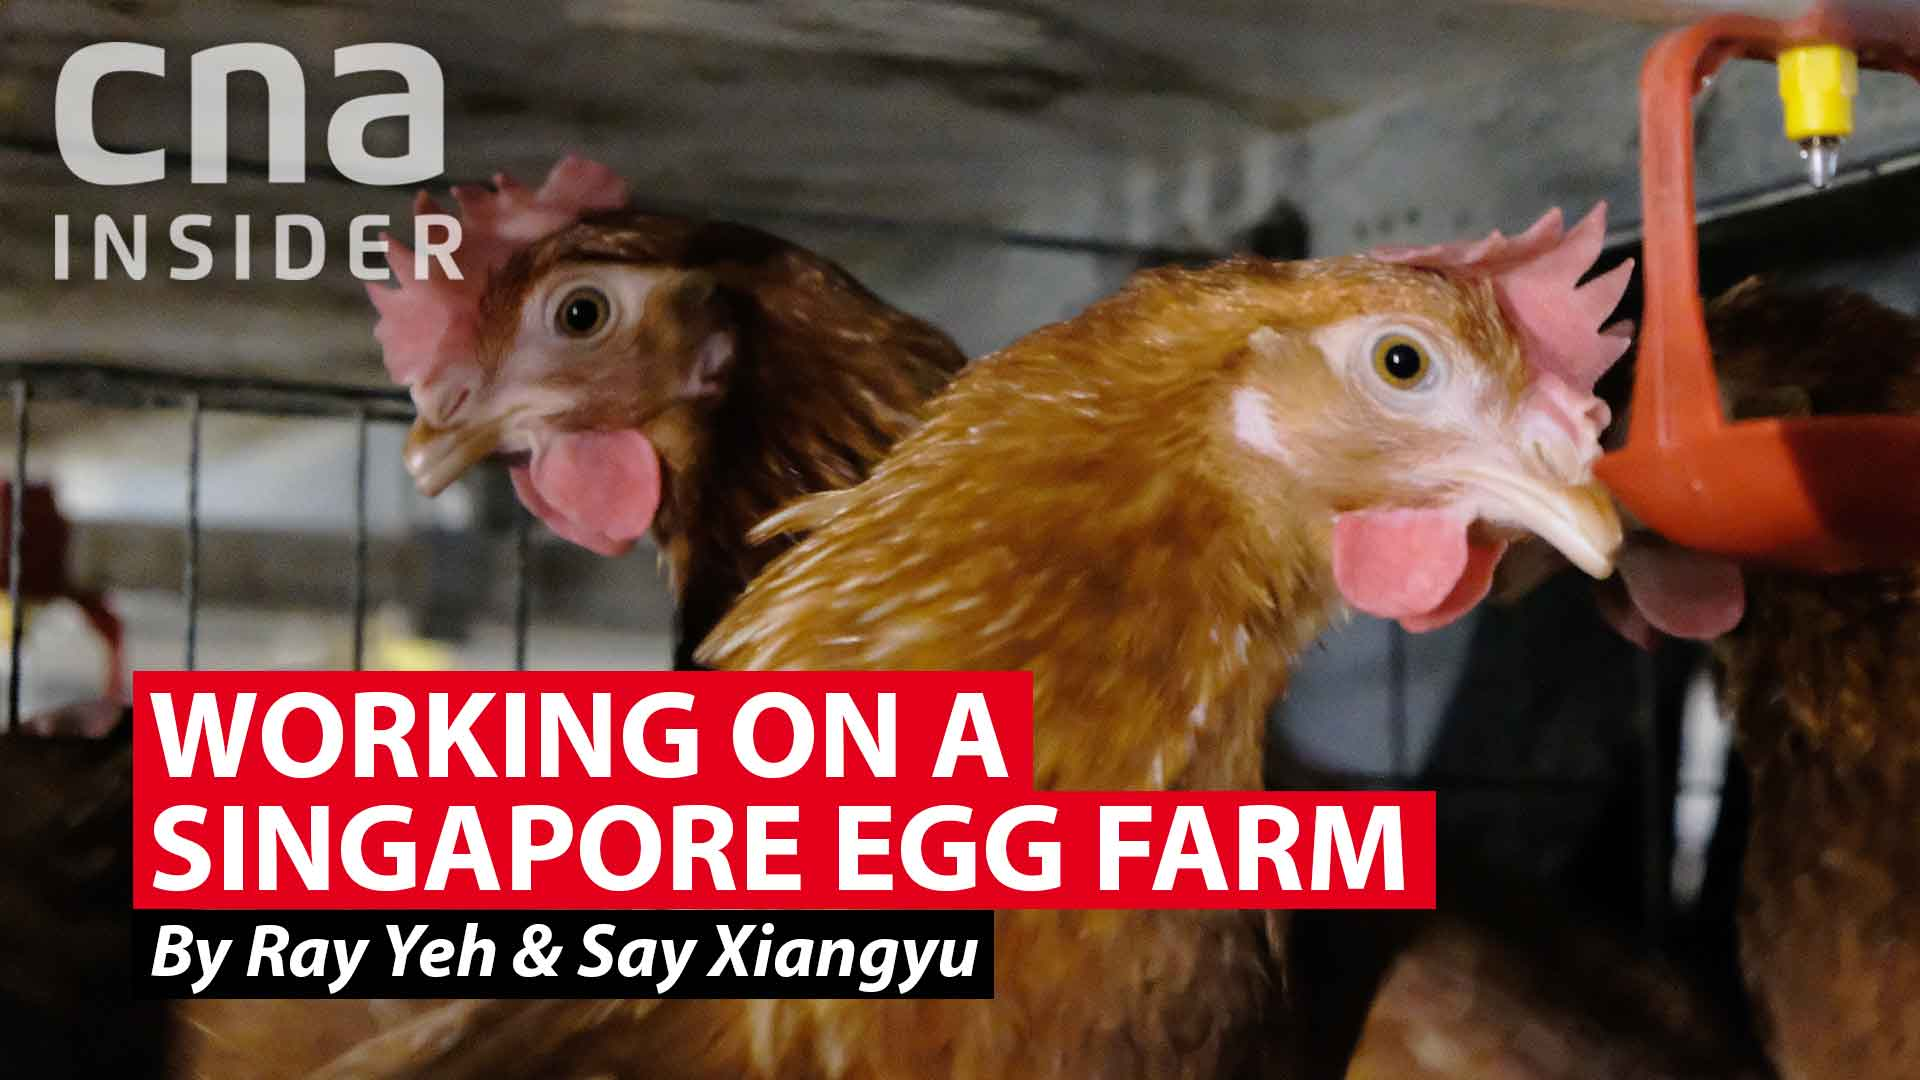 Working on a Singapore egg farm